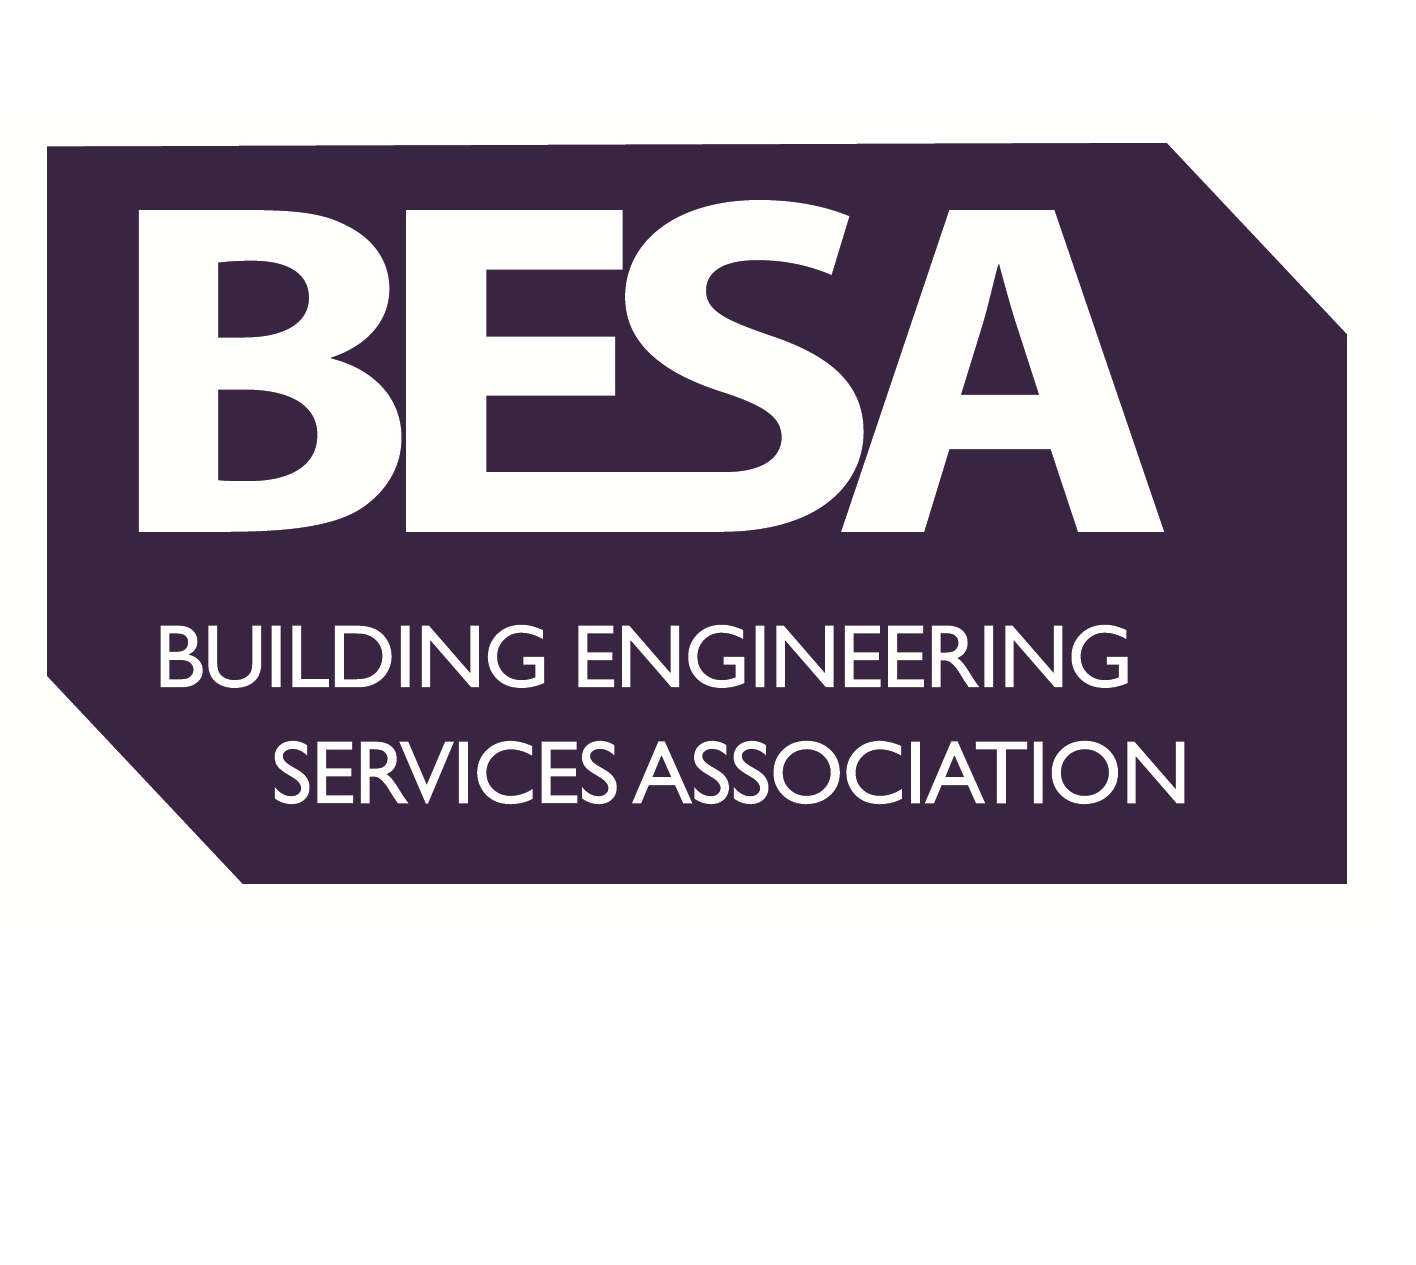 Building Engineering Services Association Logo